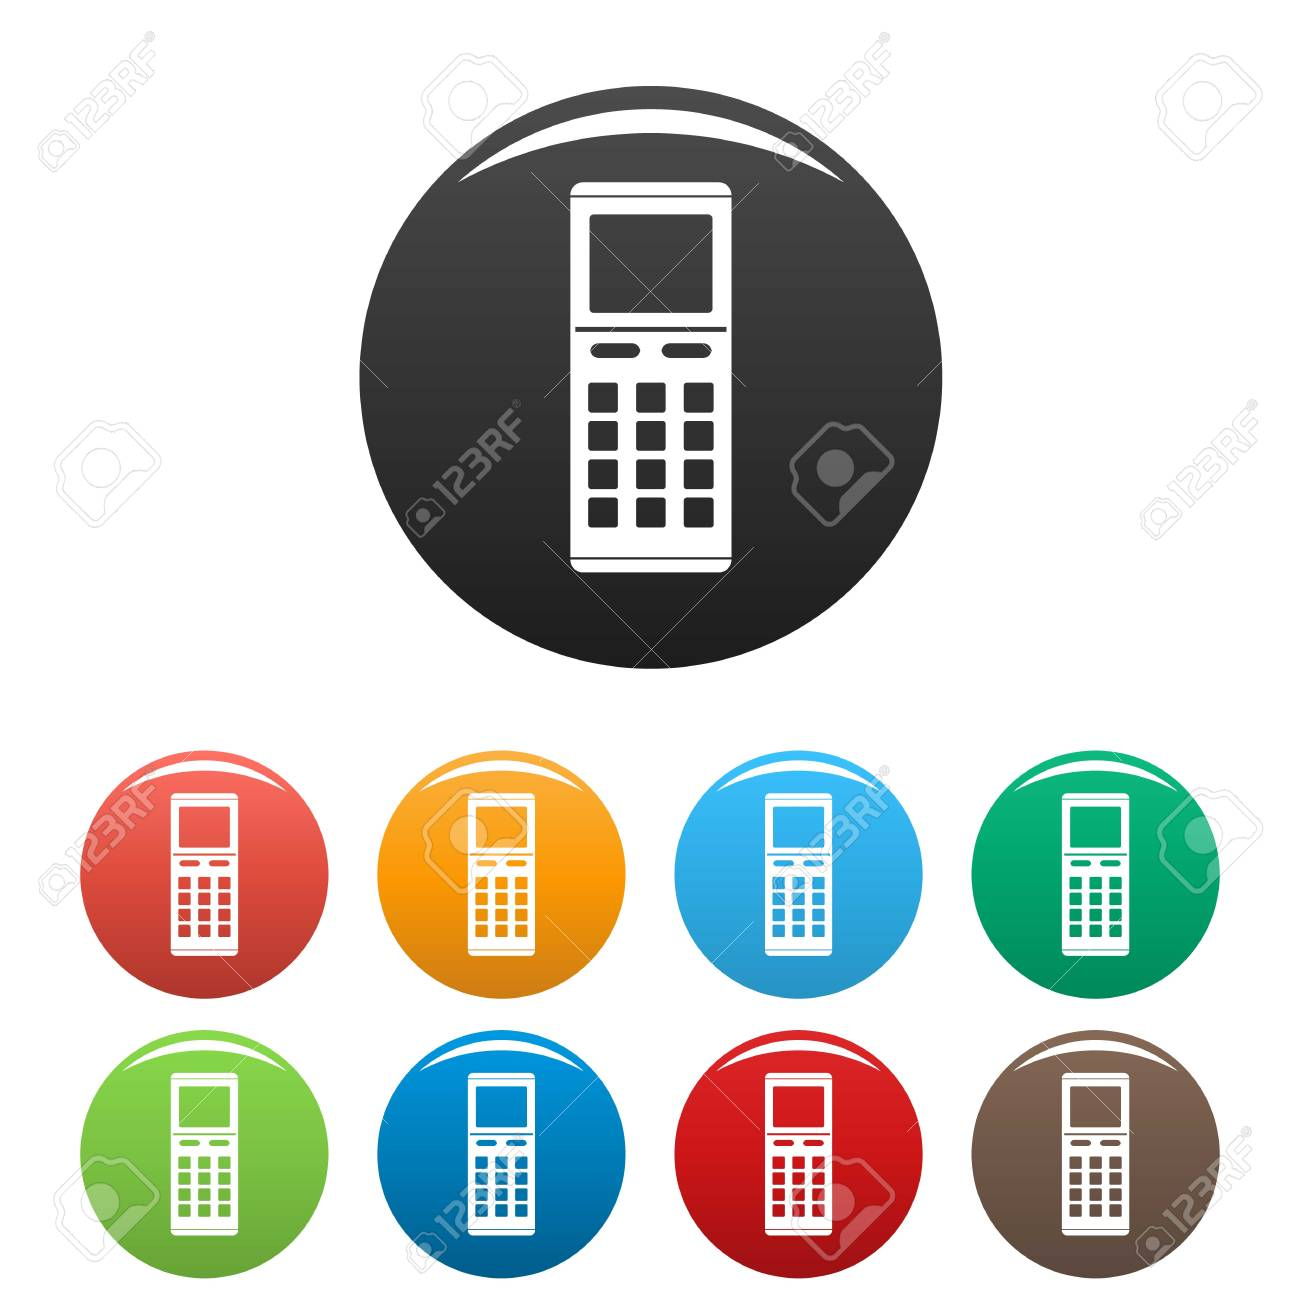 remote control air conditioner icons set 9 color vector isolated